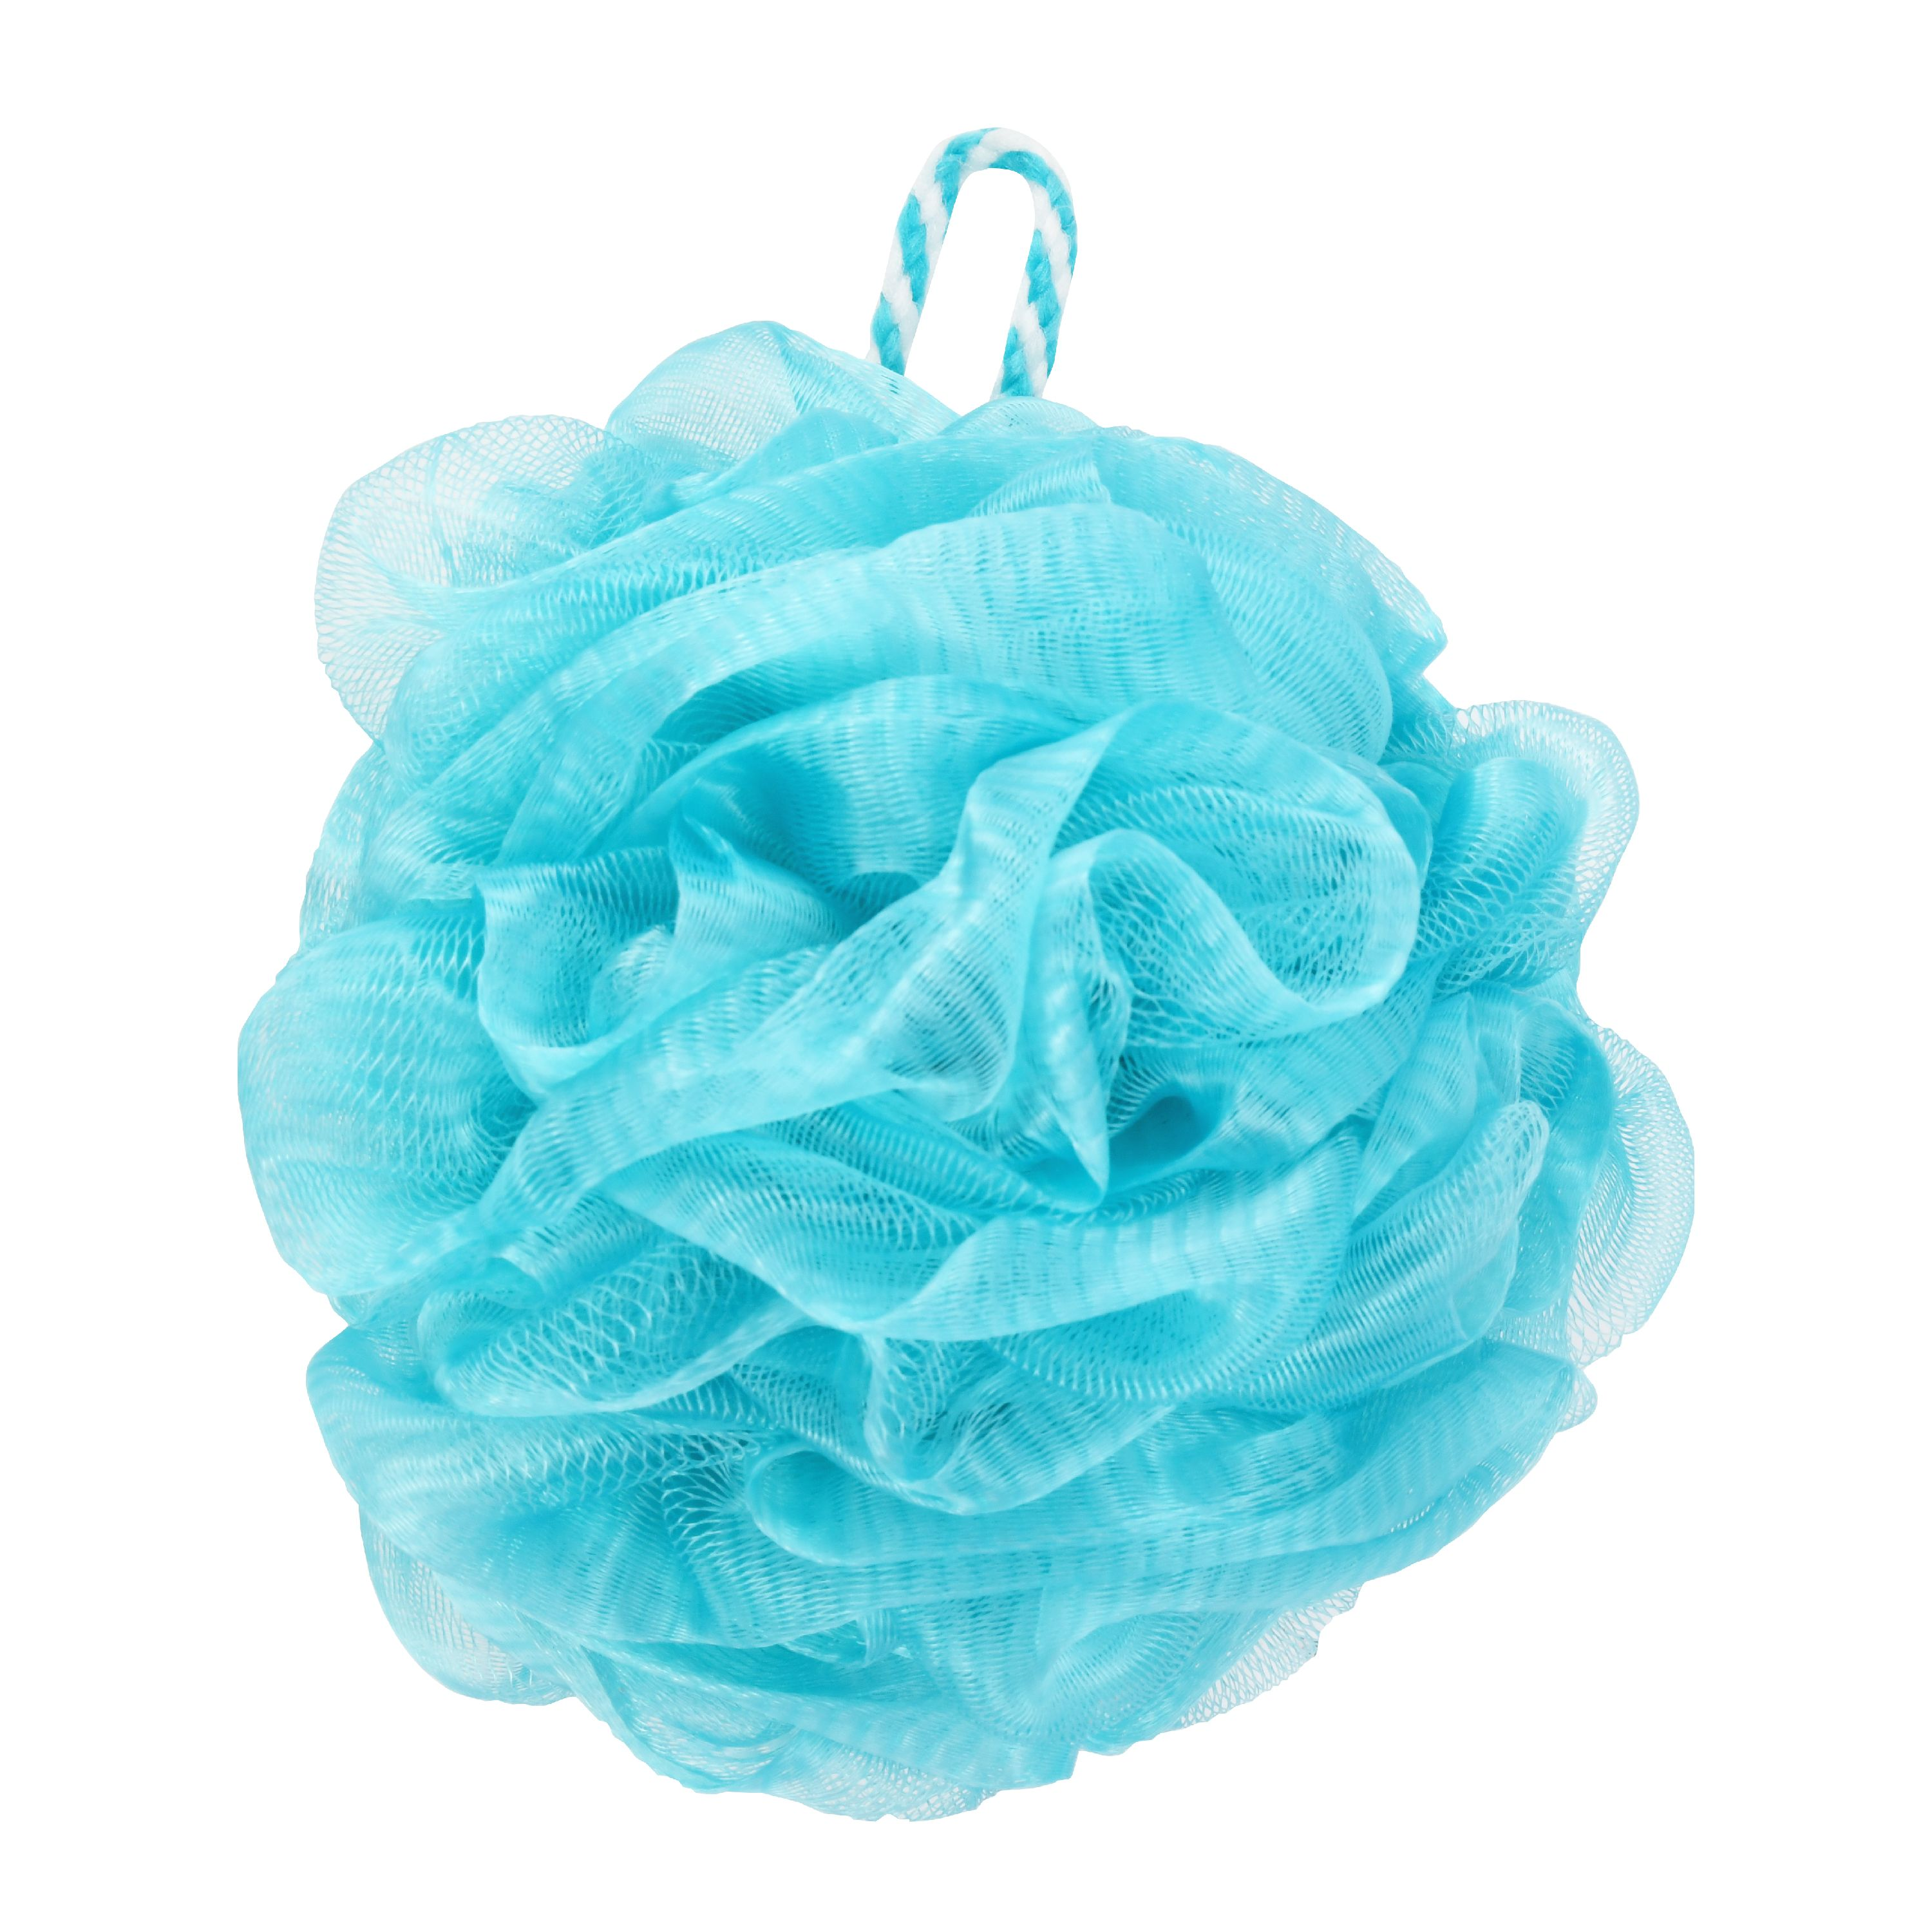 Equate Beauty Gentle Bath Pouf by Wal-Mart Stores, Inc.